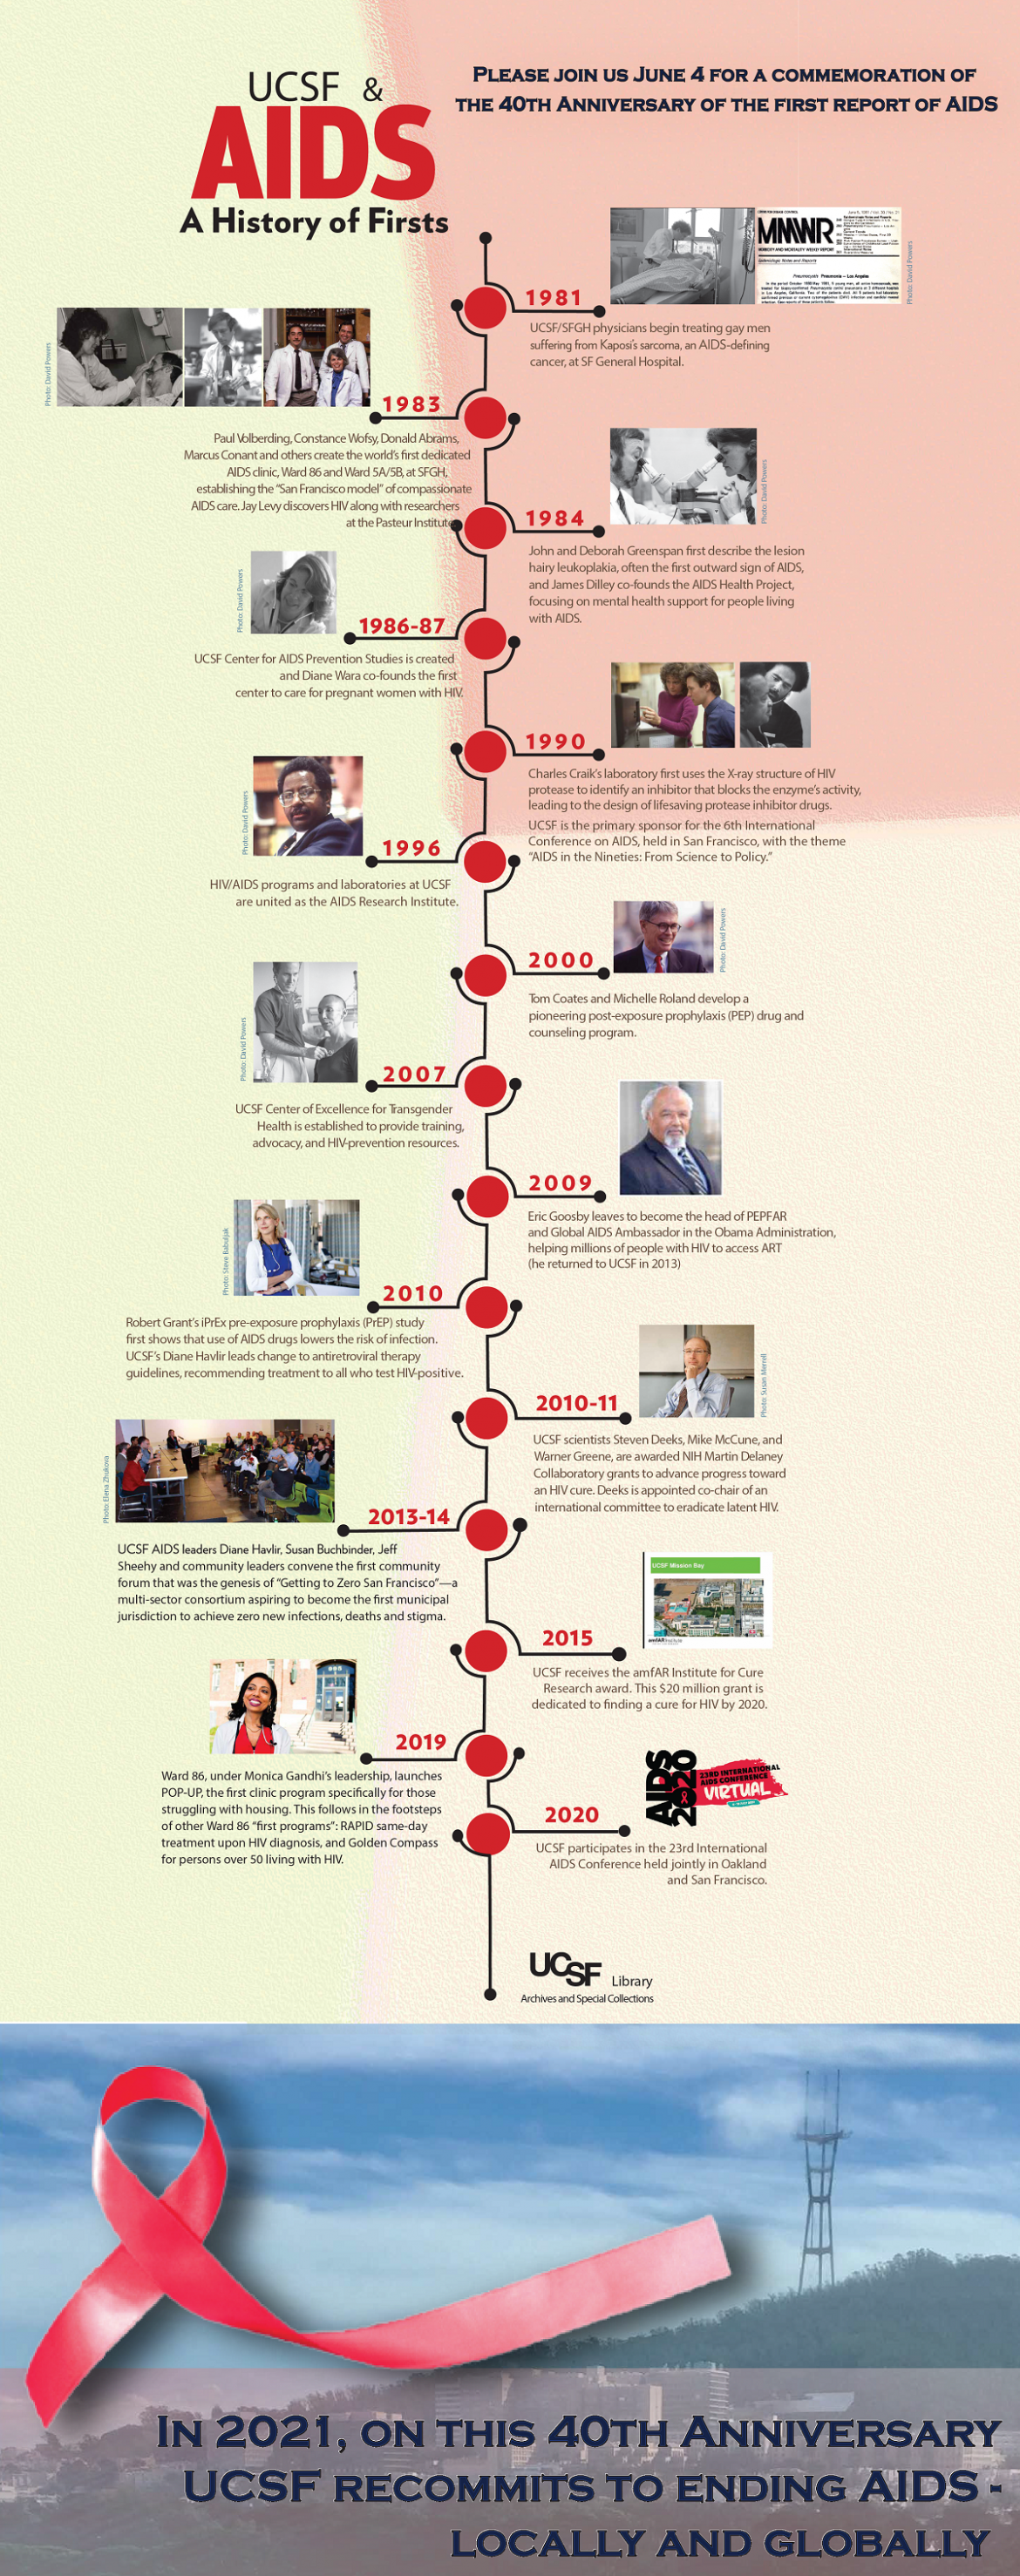 timeline of UCSF's major contributions to AIDS